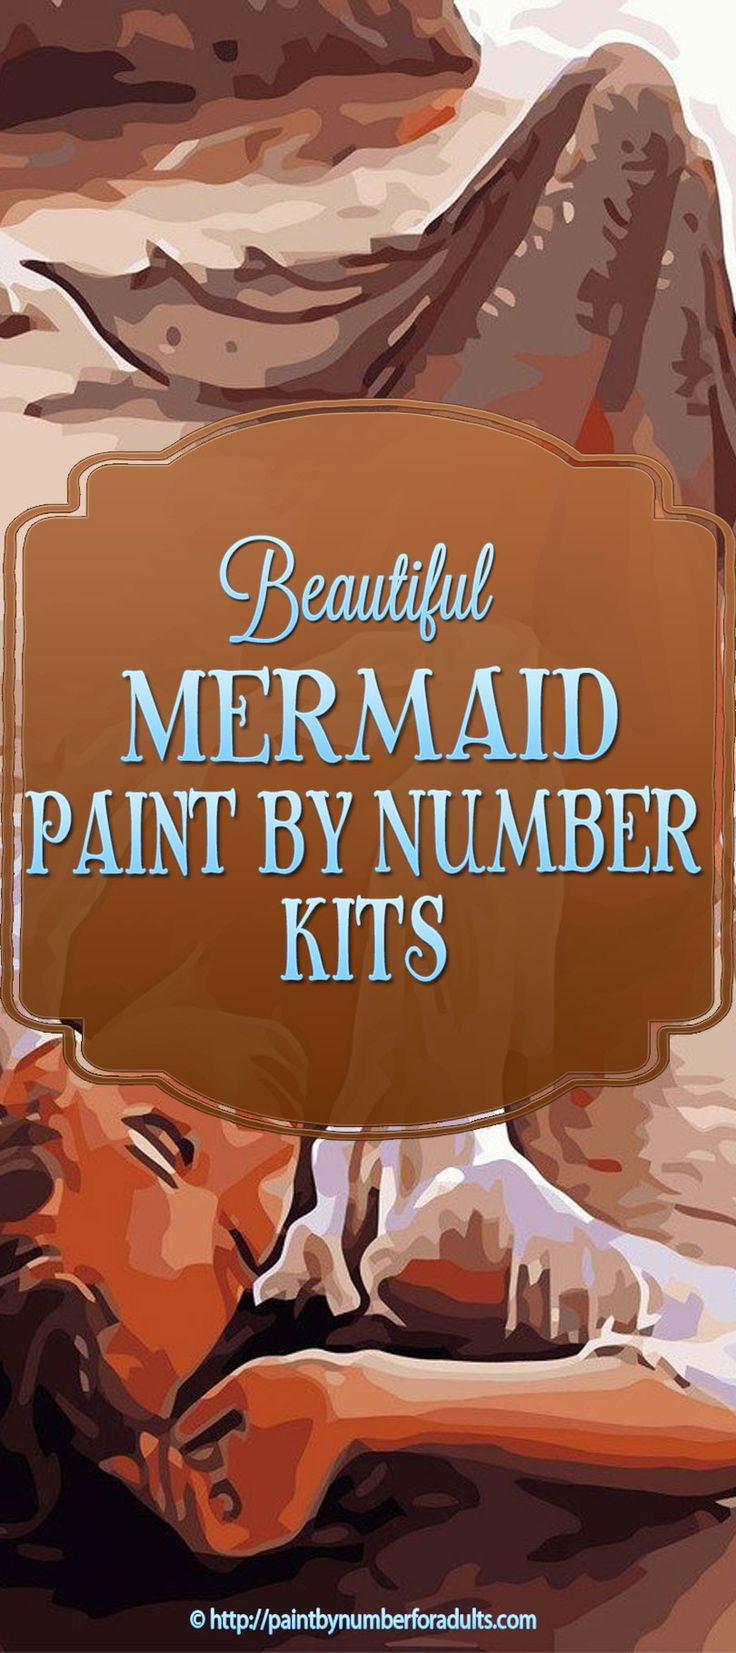 Craft master paint by number kits - Looking For Mermaid Paint By Number Kits You Ll Find Plenty Of Beautiful Paint